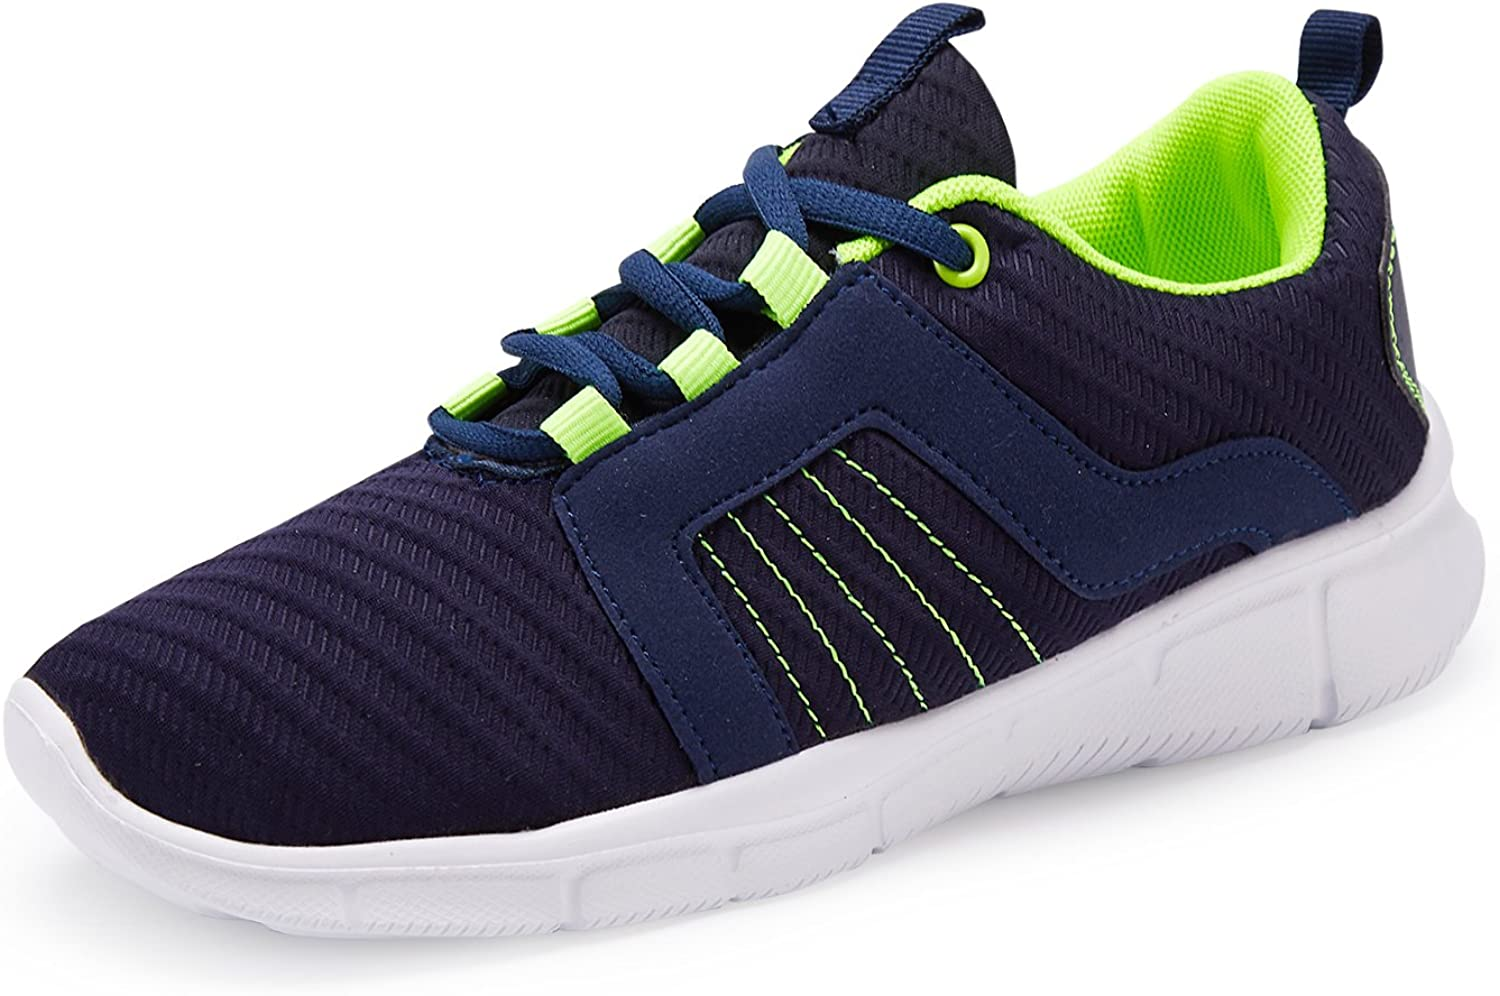 Womens Sneakers Lightweight Breathable Tennis Athletic Running Walking Shoes